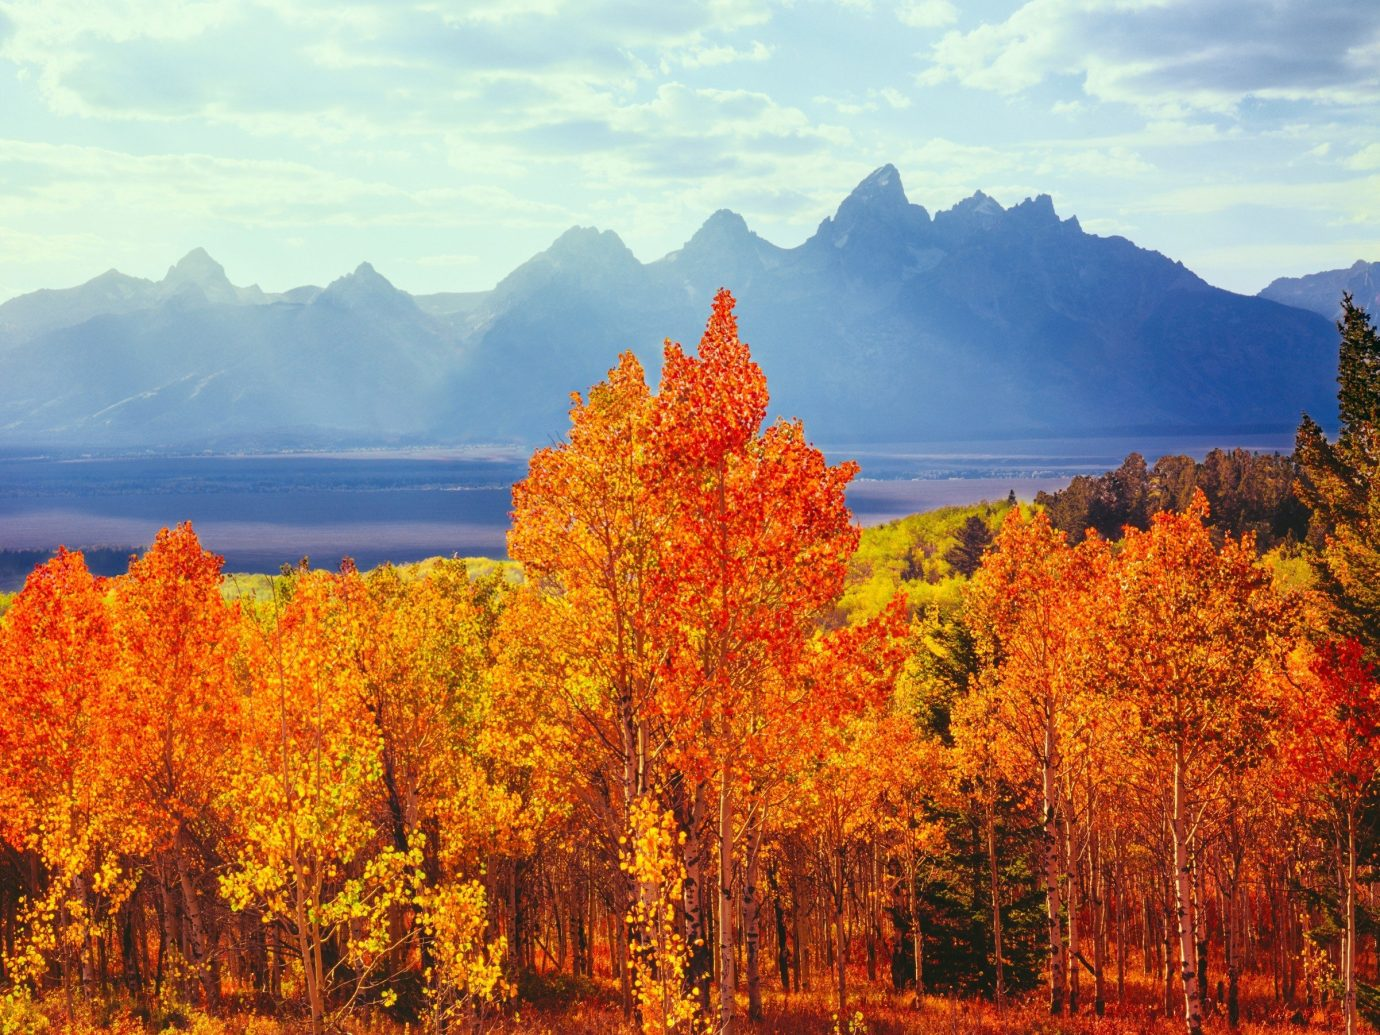 Trip Ideas tree mountain outdoor sky mountainous landforms Nature autumn wilderness season leaf ecosystem background plant poplar morning woody plant landscape flower Lake meadow Forest surrounded distance lush